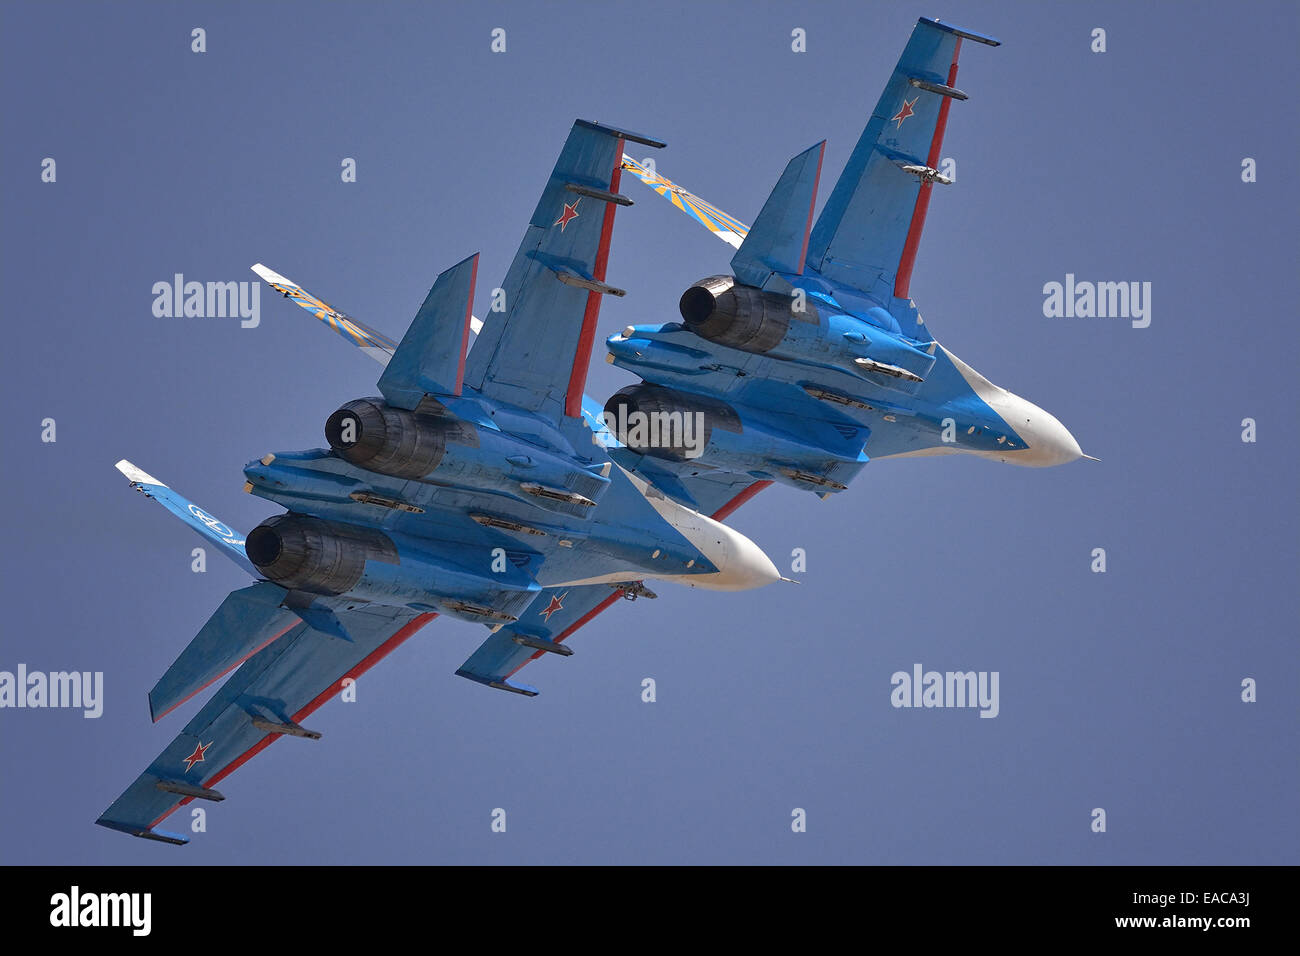 Su-27 of Russian Knights display team in flight - Stock Image